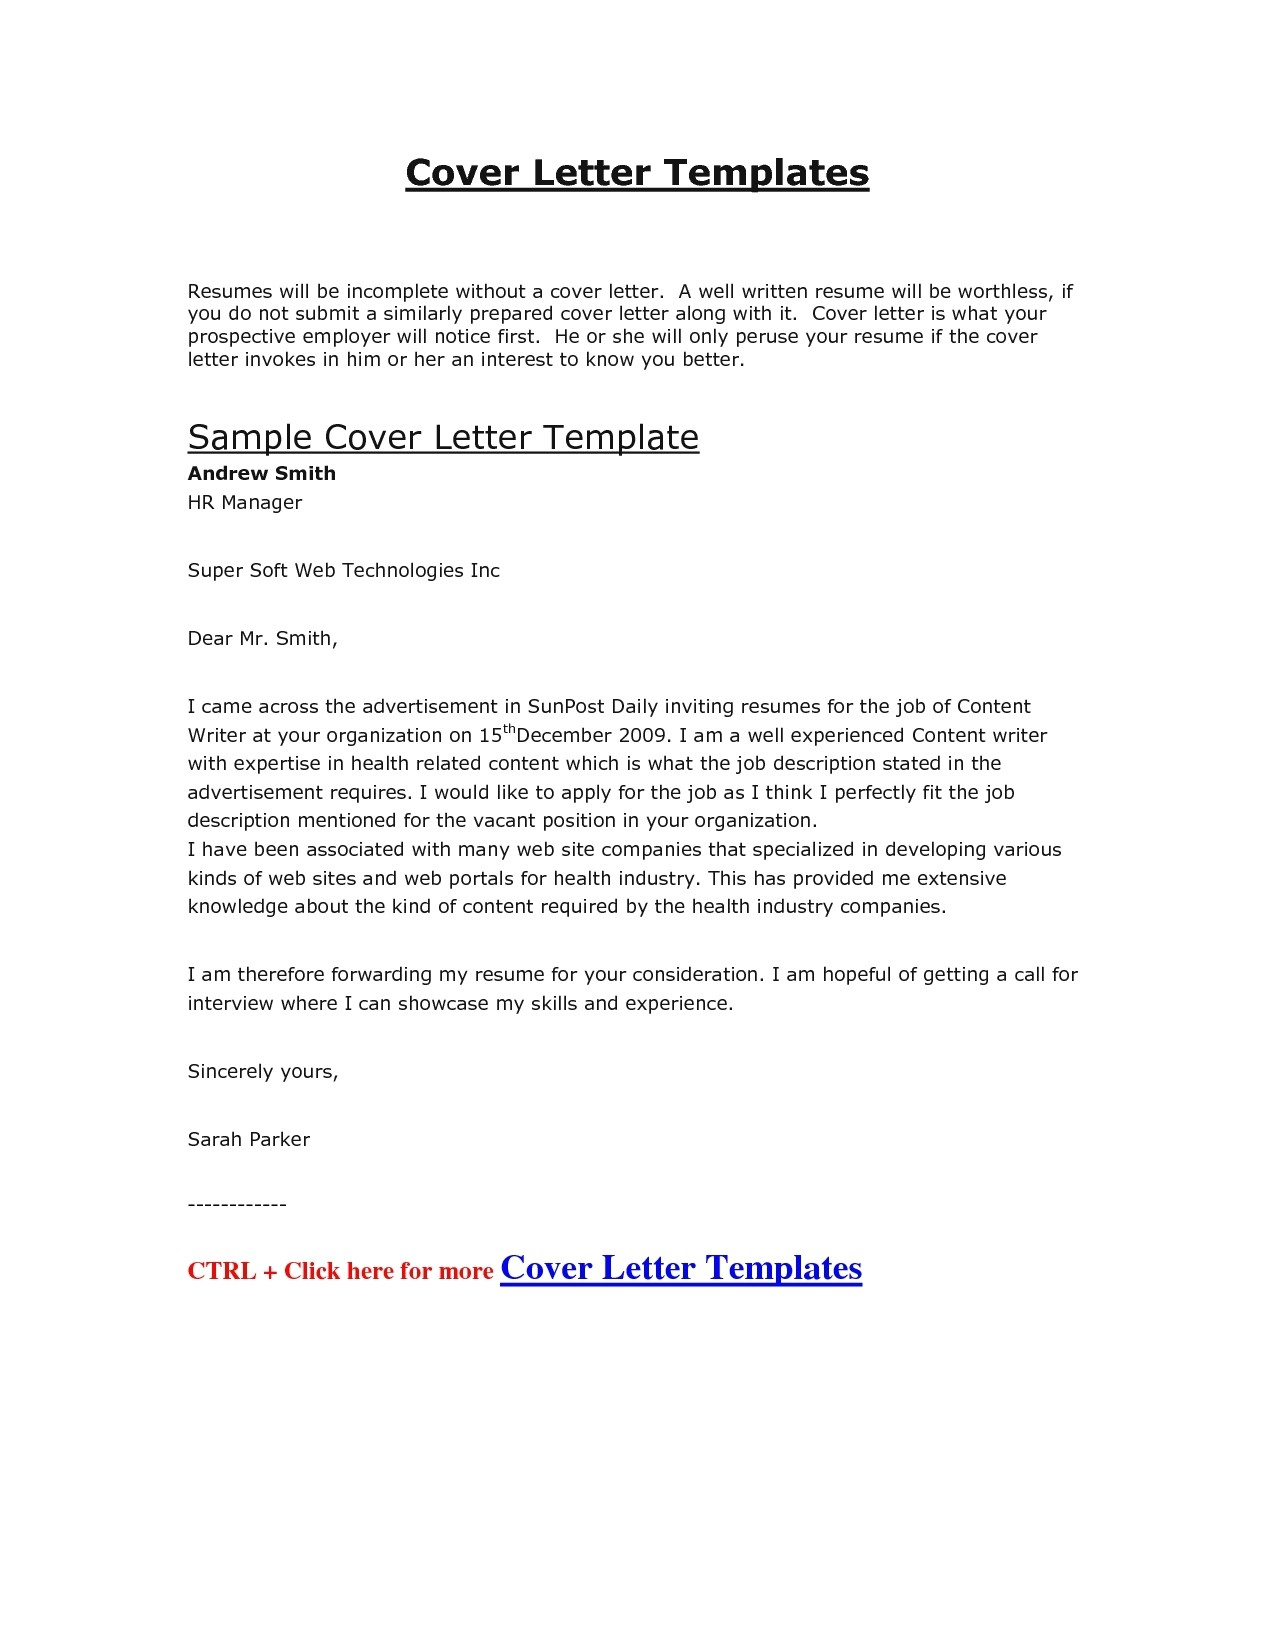 Template for Resume Cover Letter Resume Cover Letter Template 2017 Learnhowtoloseweight Net